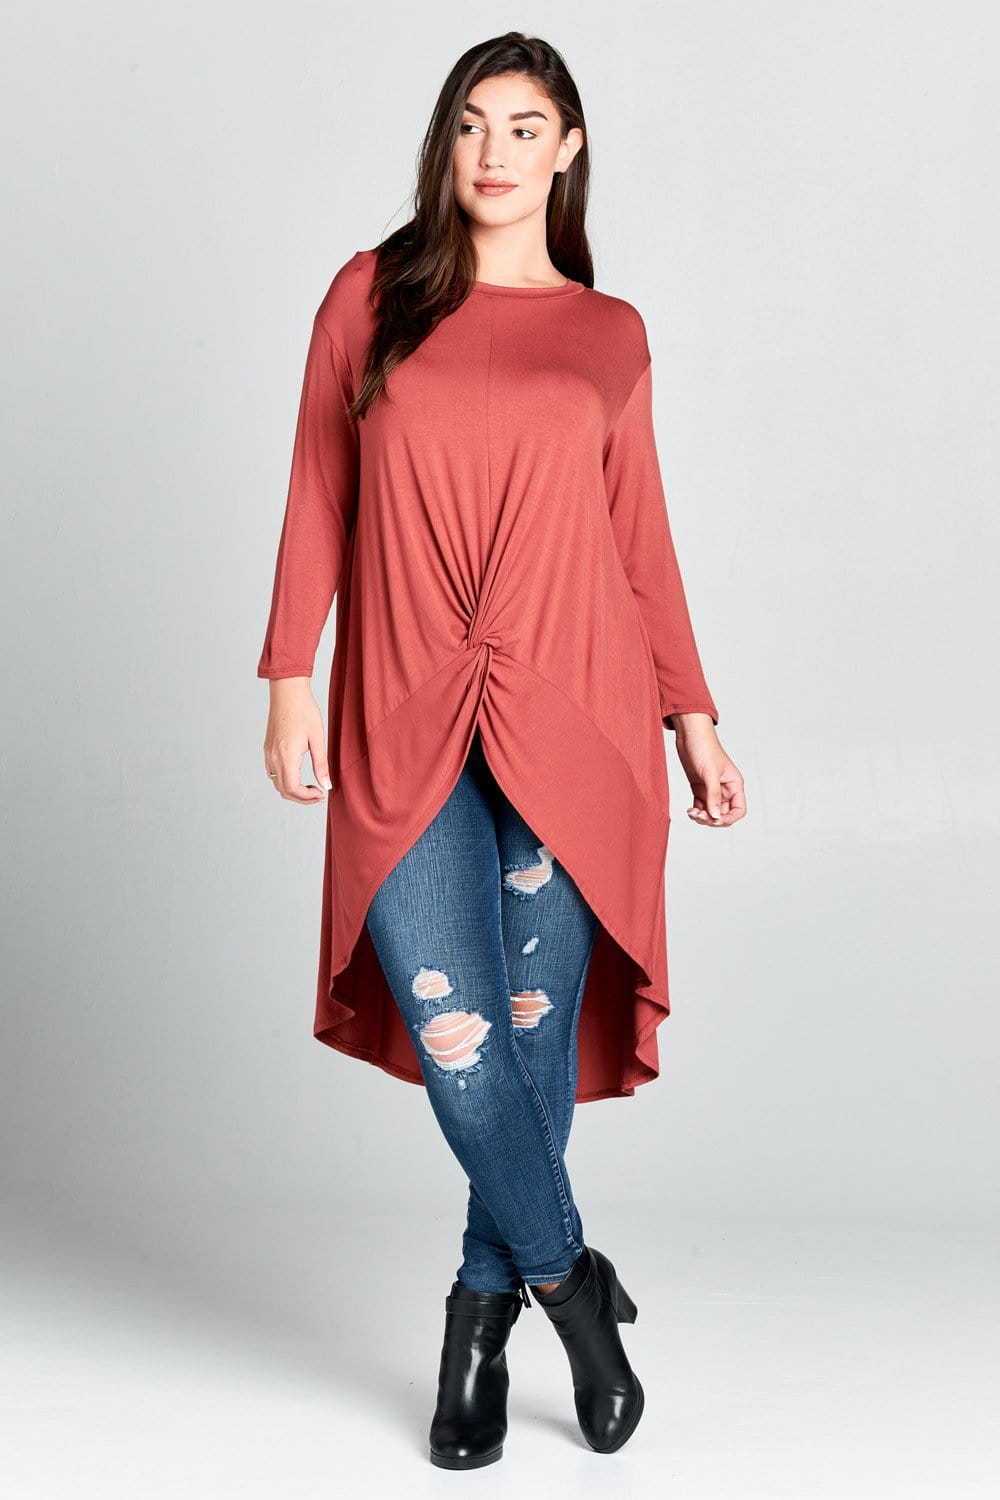 Marsala Top - Curvy Clothes Australia - Afterpay Laybuy & Humm Online